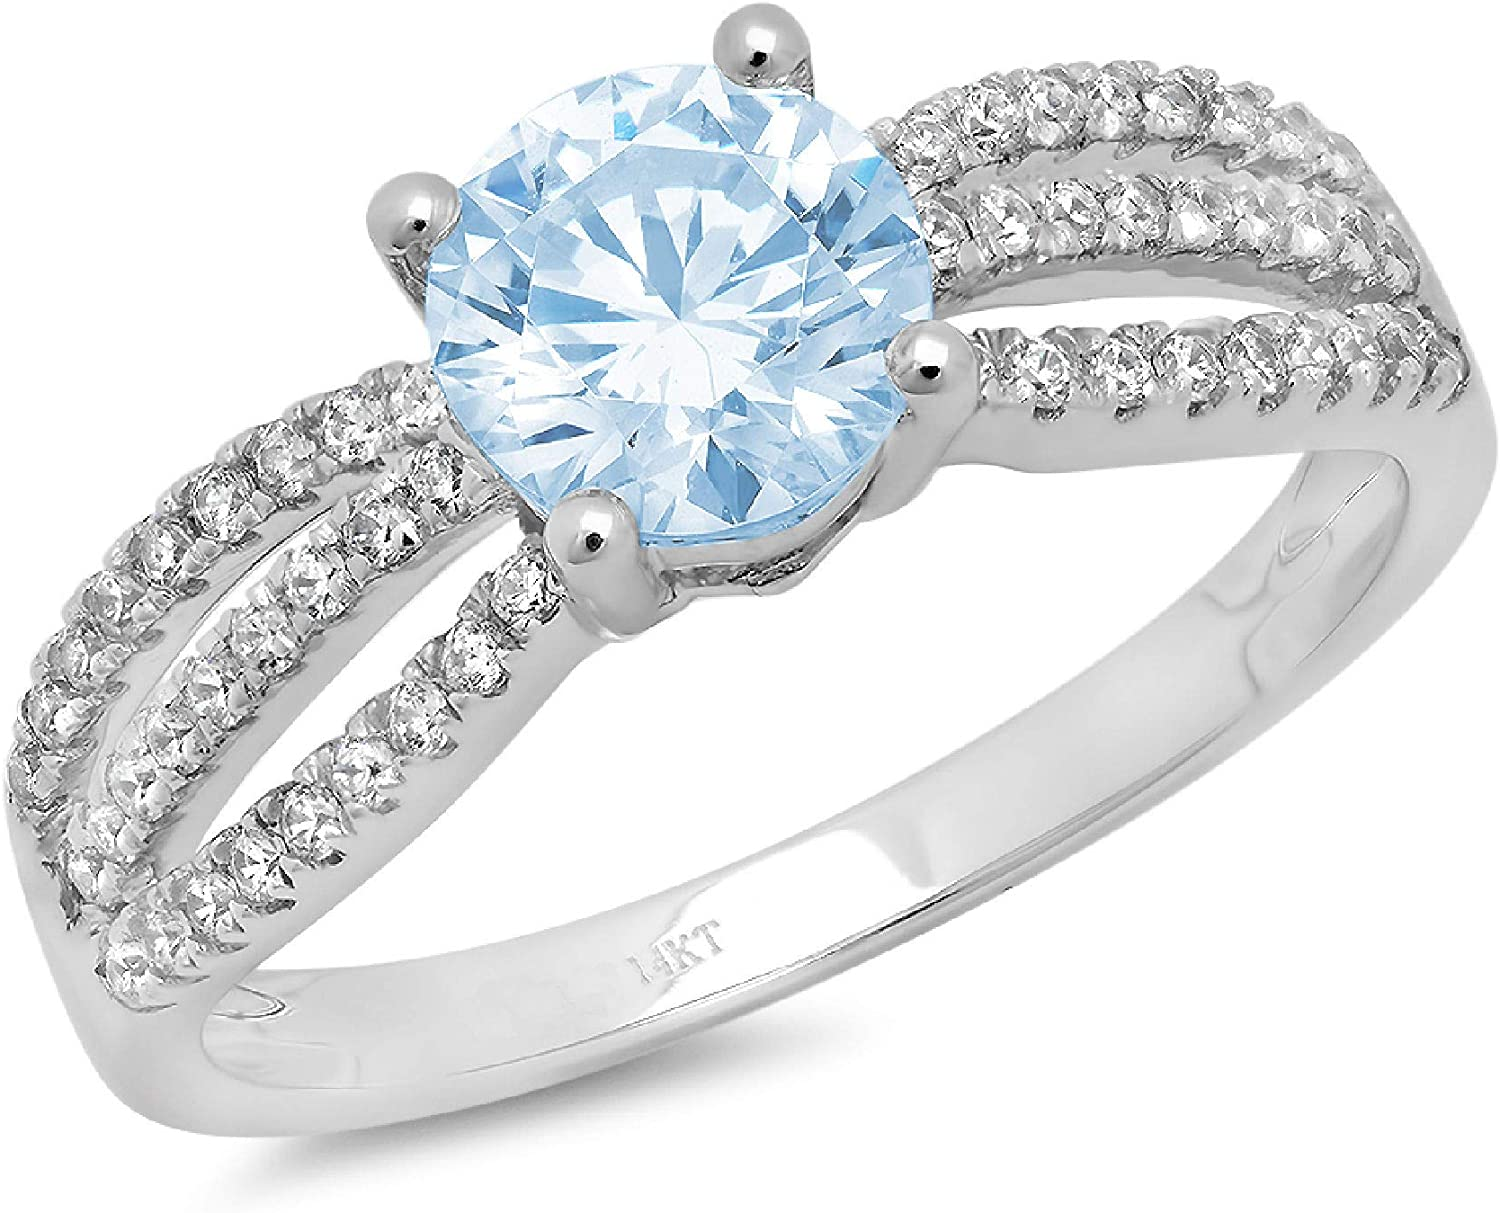 1.25ct Brilliant Round Cut Solitaire Accent Genuine Flawless Blue Simulated Diamond Gemstone Engagement Promise Anniversary Bridal Wedding Ring Solid 18K White Gold